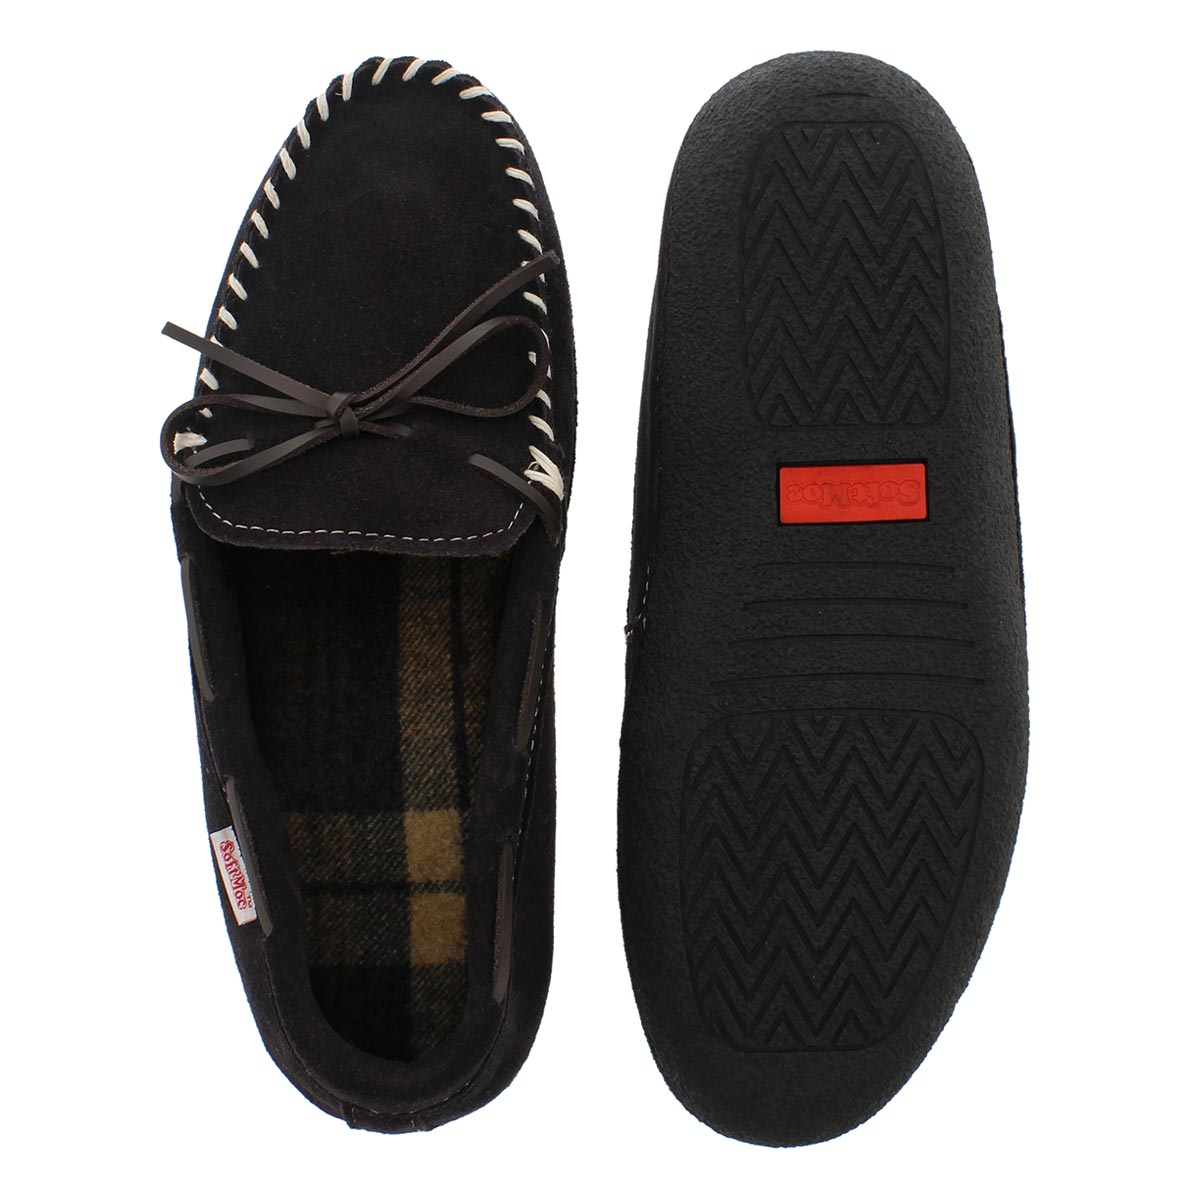 Mns Greg brn plaid lined moc